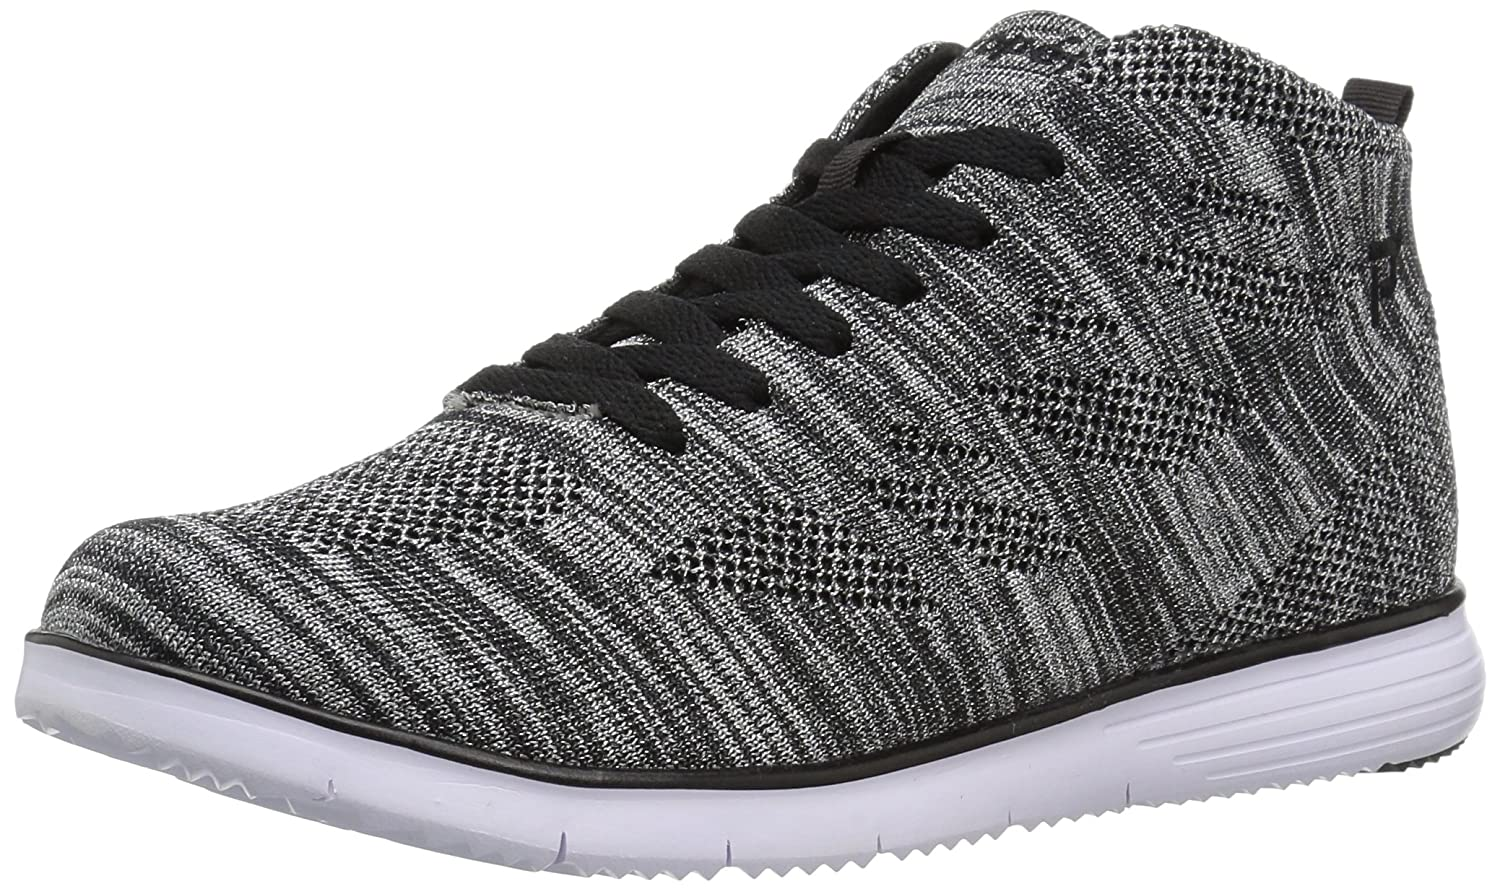 Propet Women's TravelFit Hi Walking Shoe B01NBF5637 11 W US|Silver Metallic